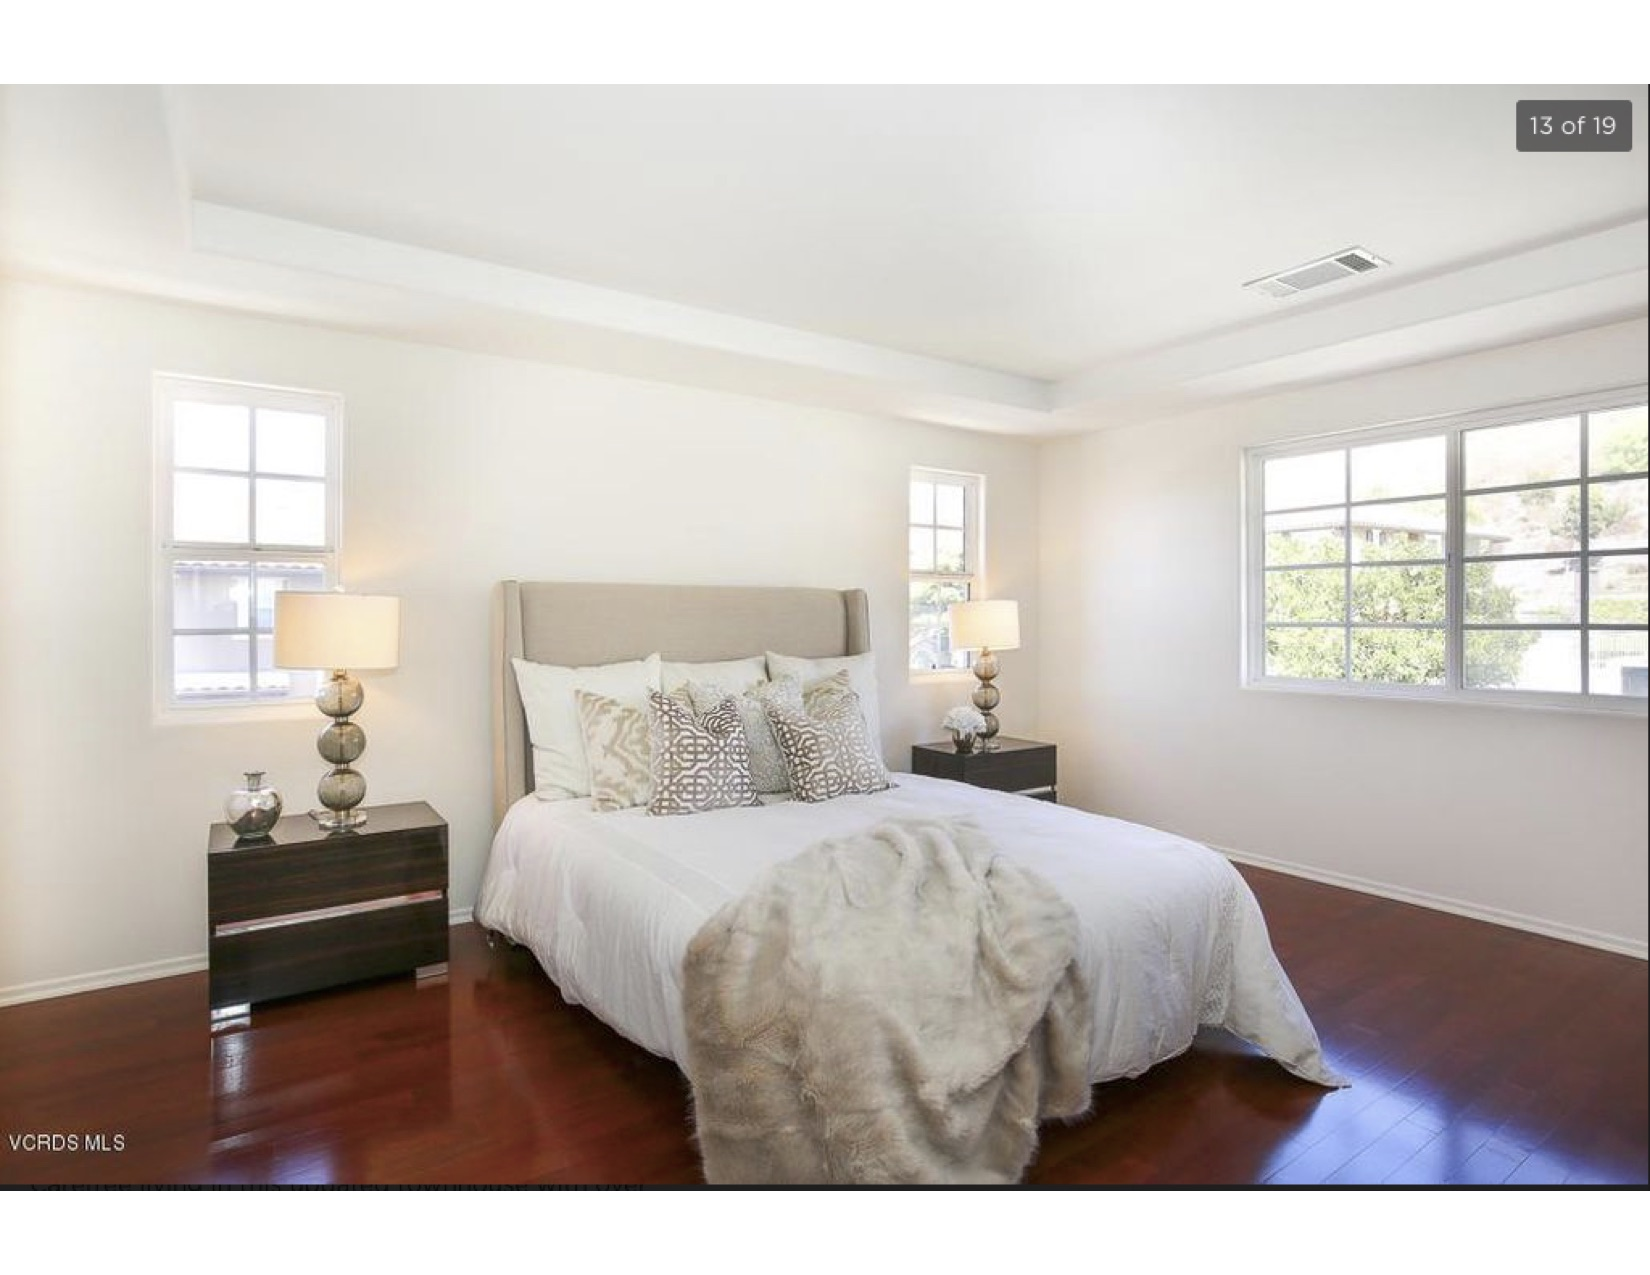 tamaras staging bedroom.jpg